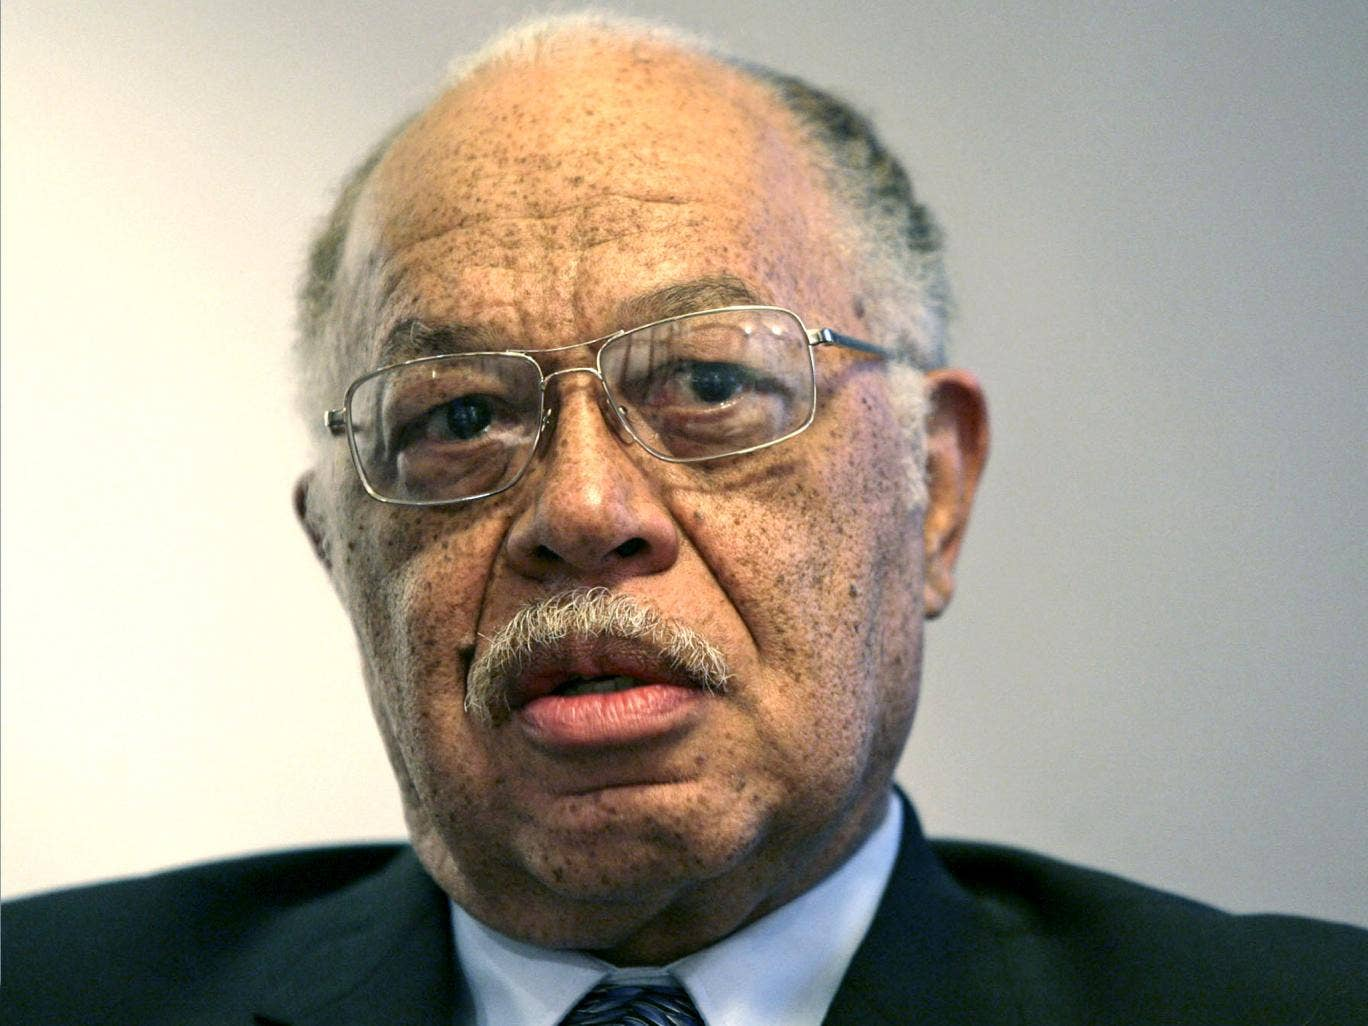 Dr Kermit Gosnell's clinic was a last resort for underprivileged women seeking late-term abortions